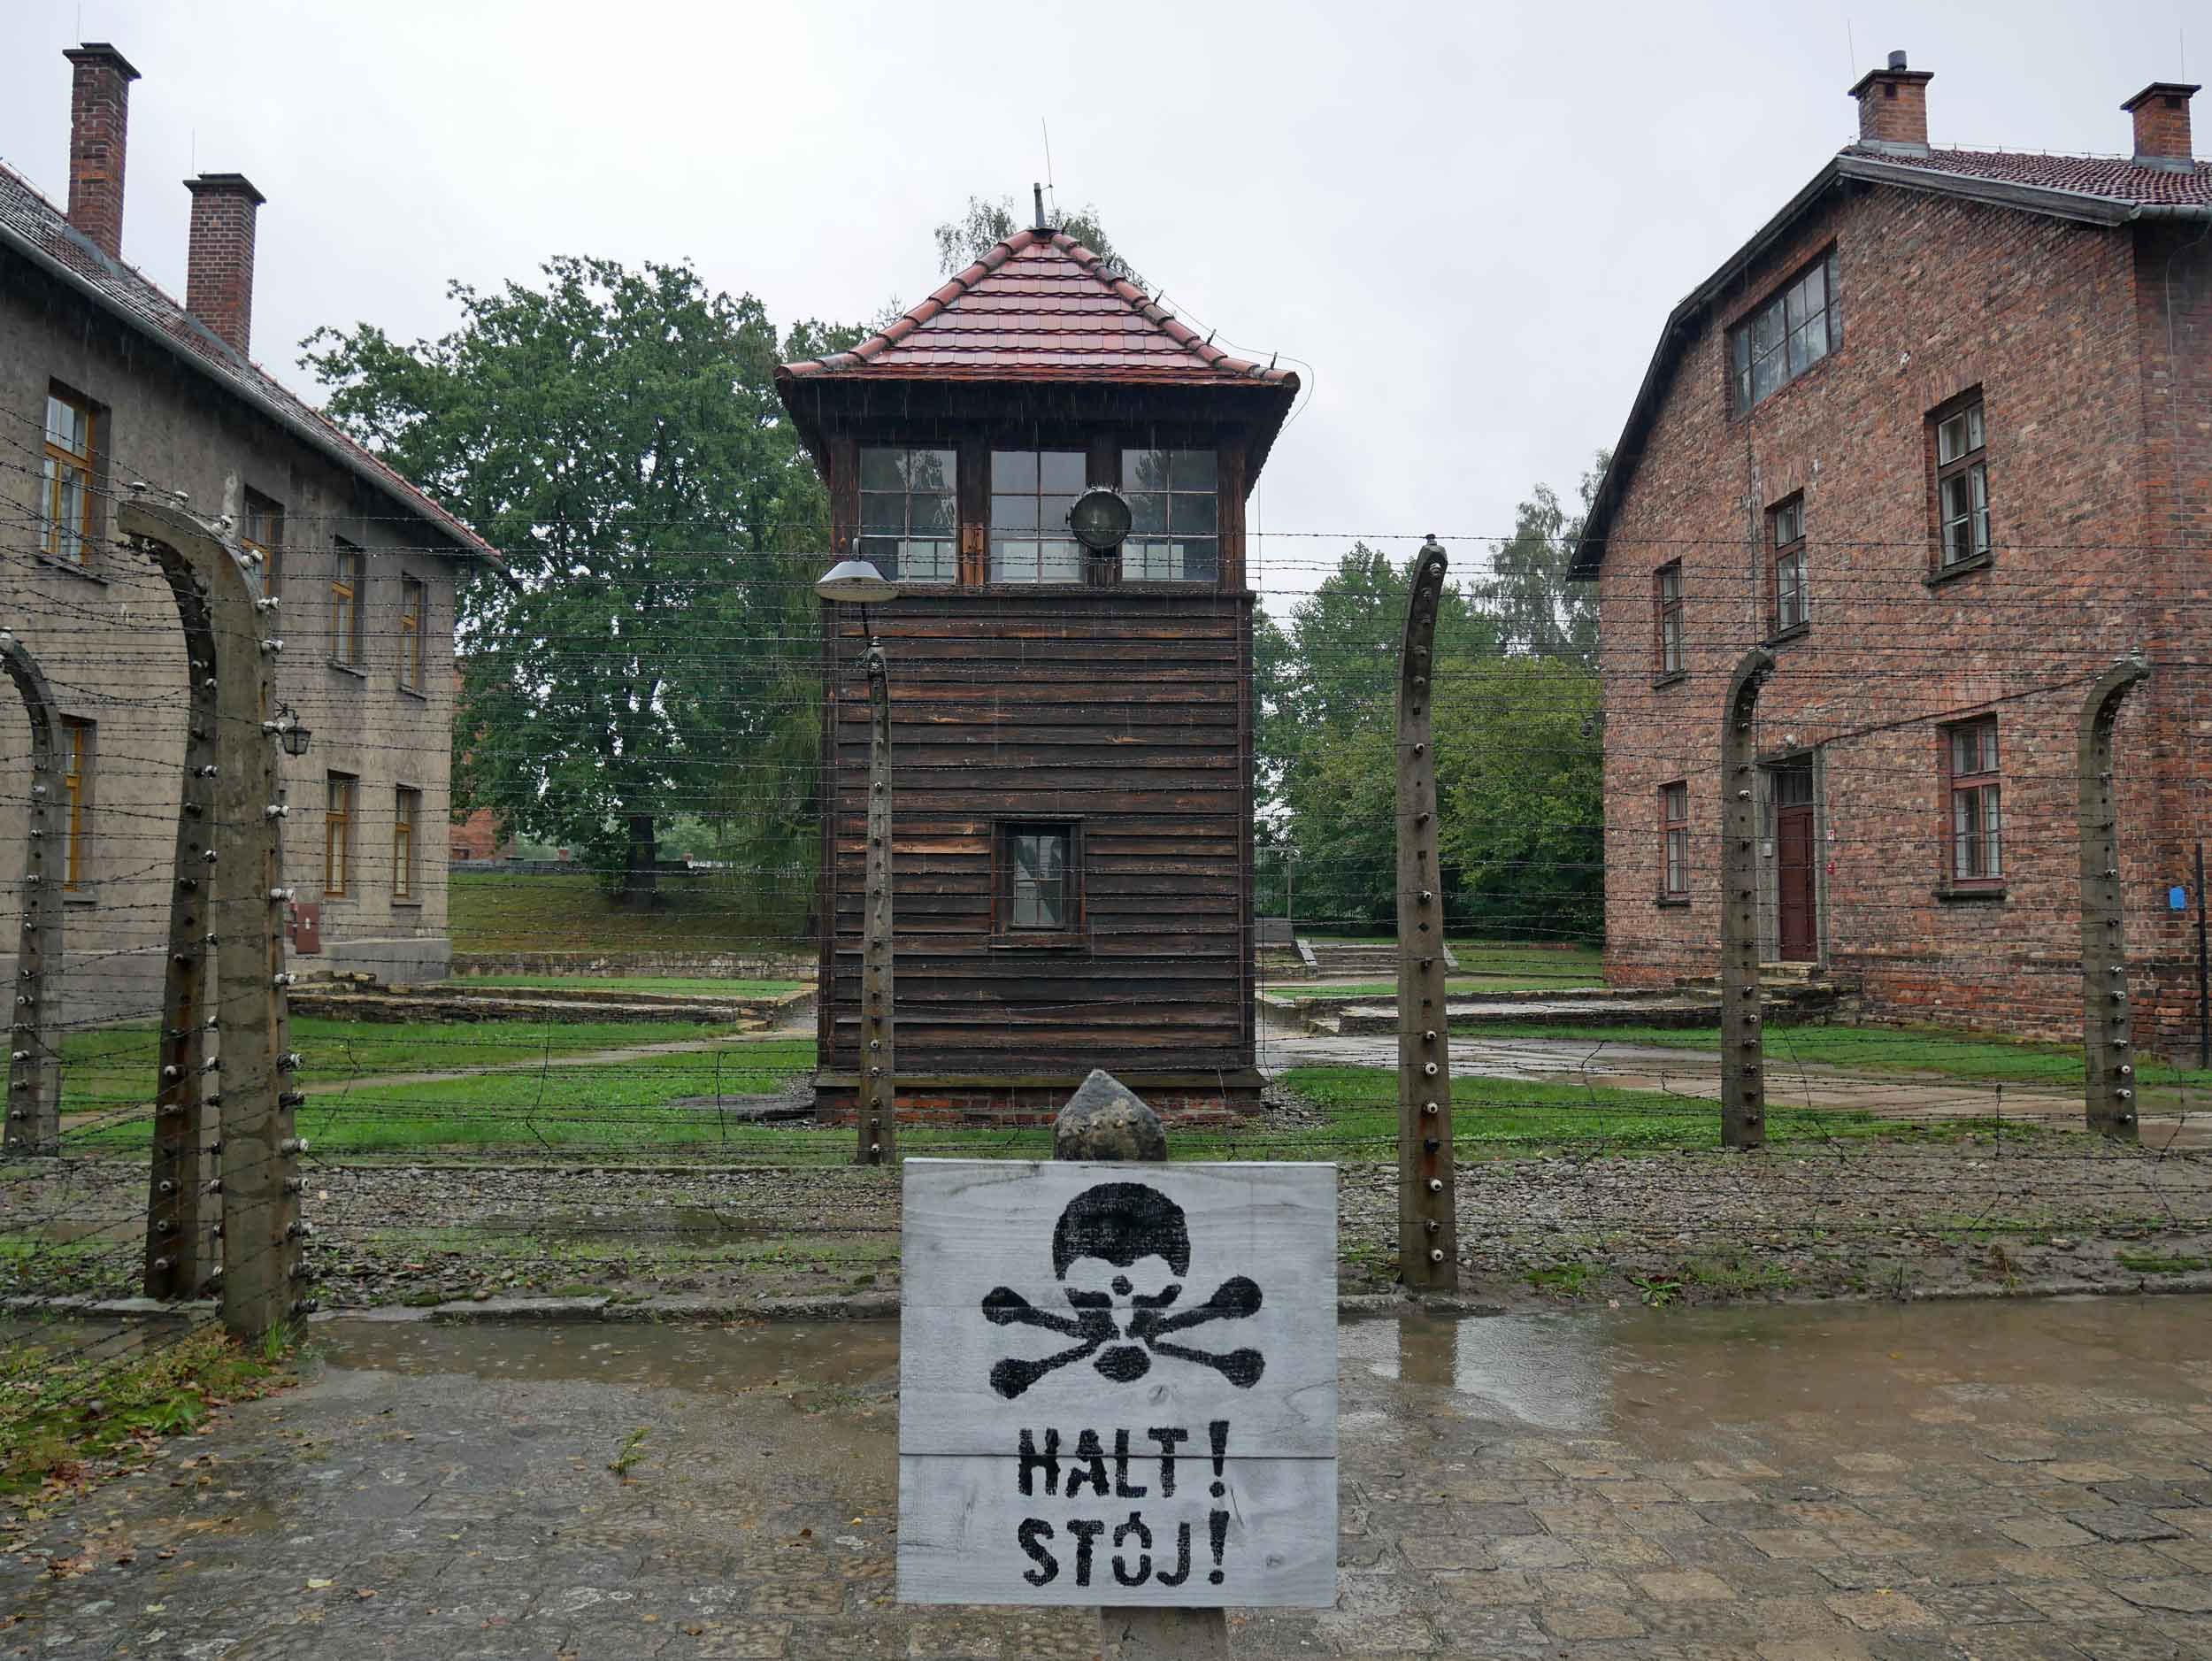 The camp's 16 brick buildings were guarded by towers, barbed wire and warning signs painted with skulls and crossbones, called  totenkopf  in German.